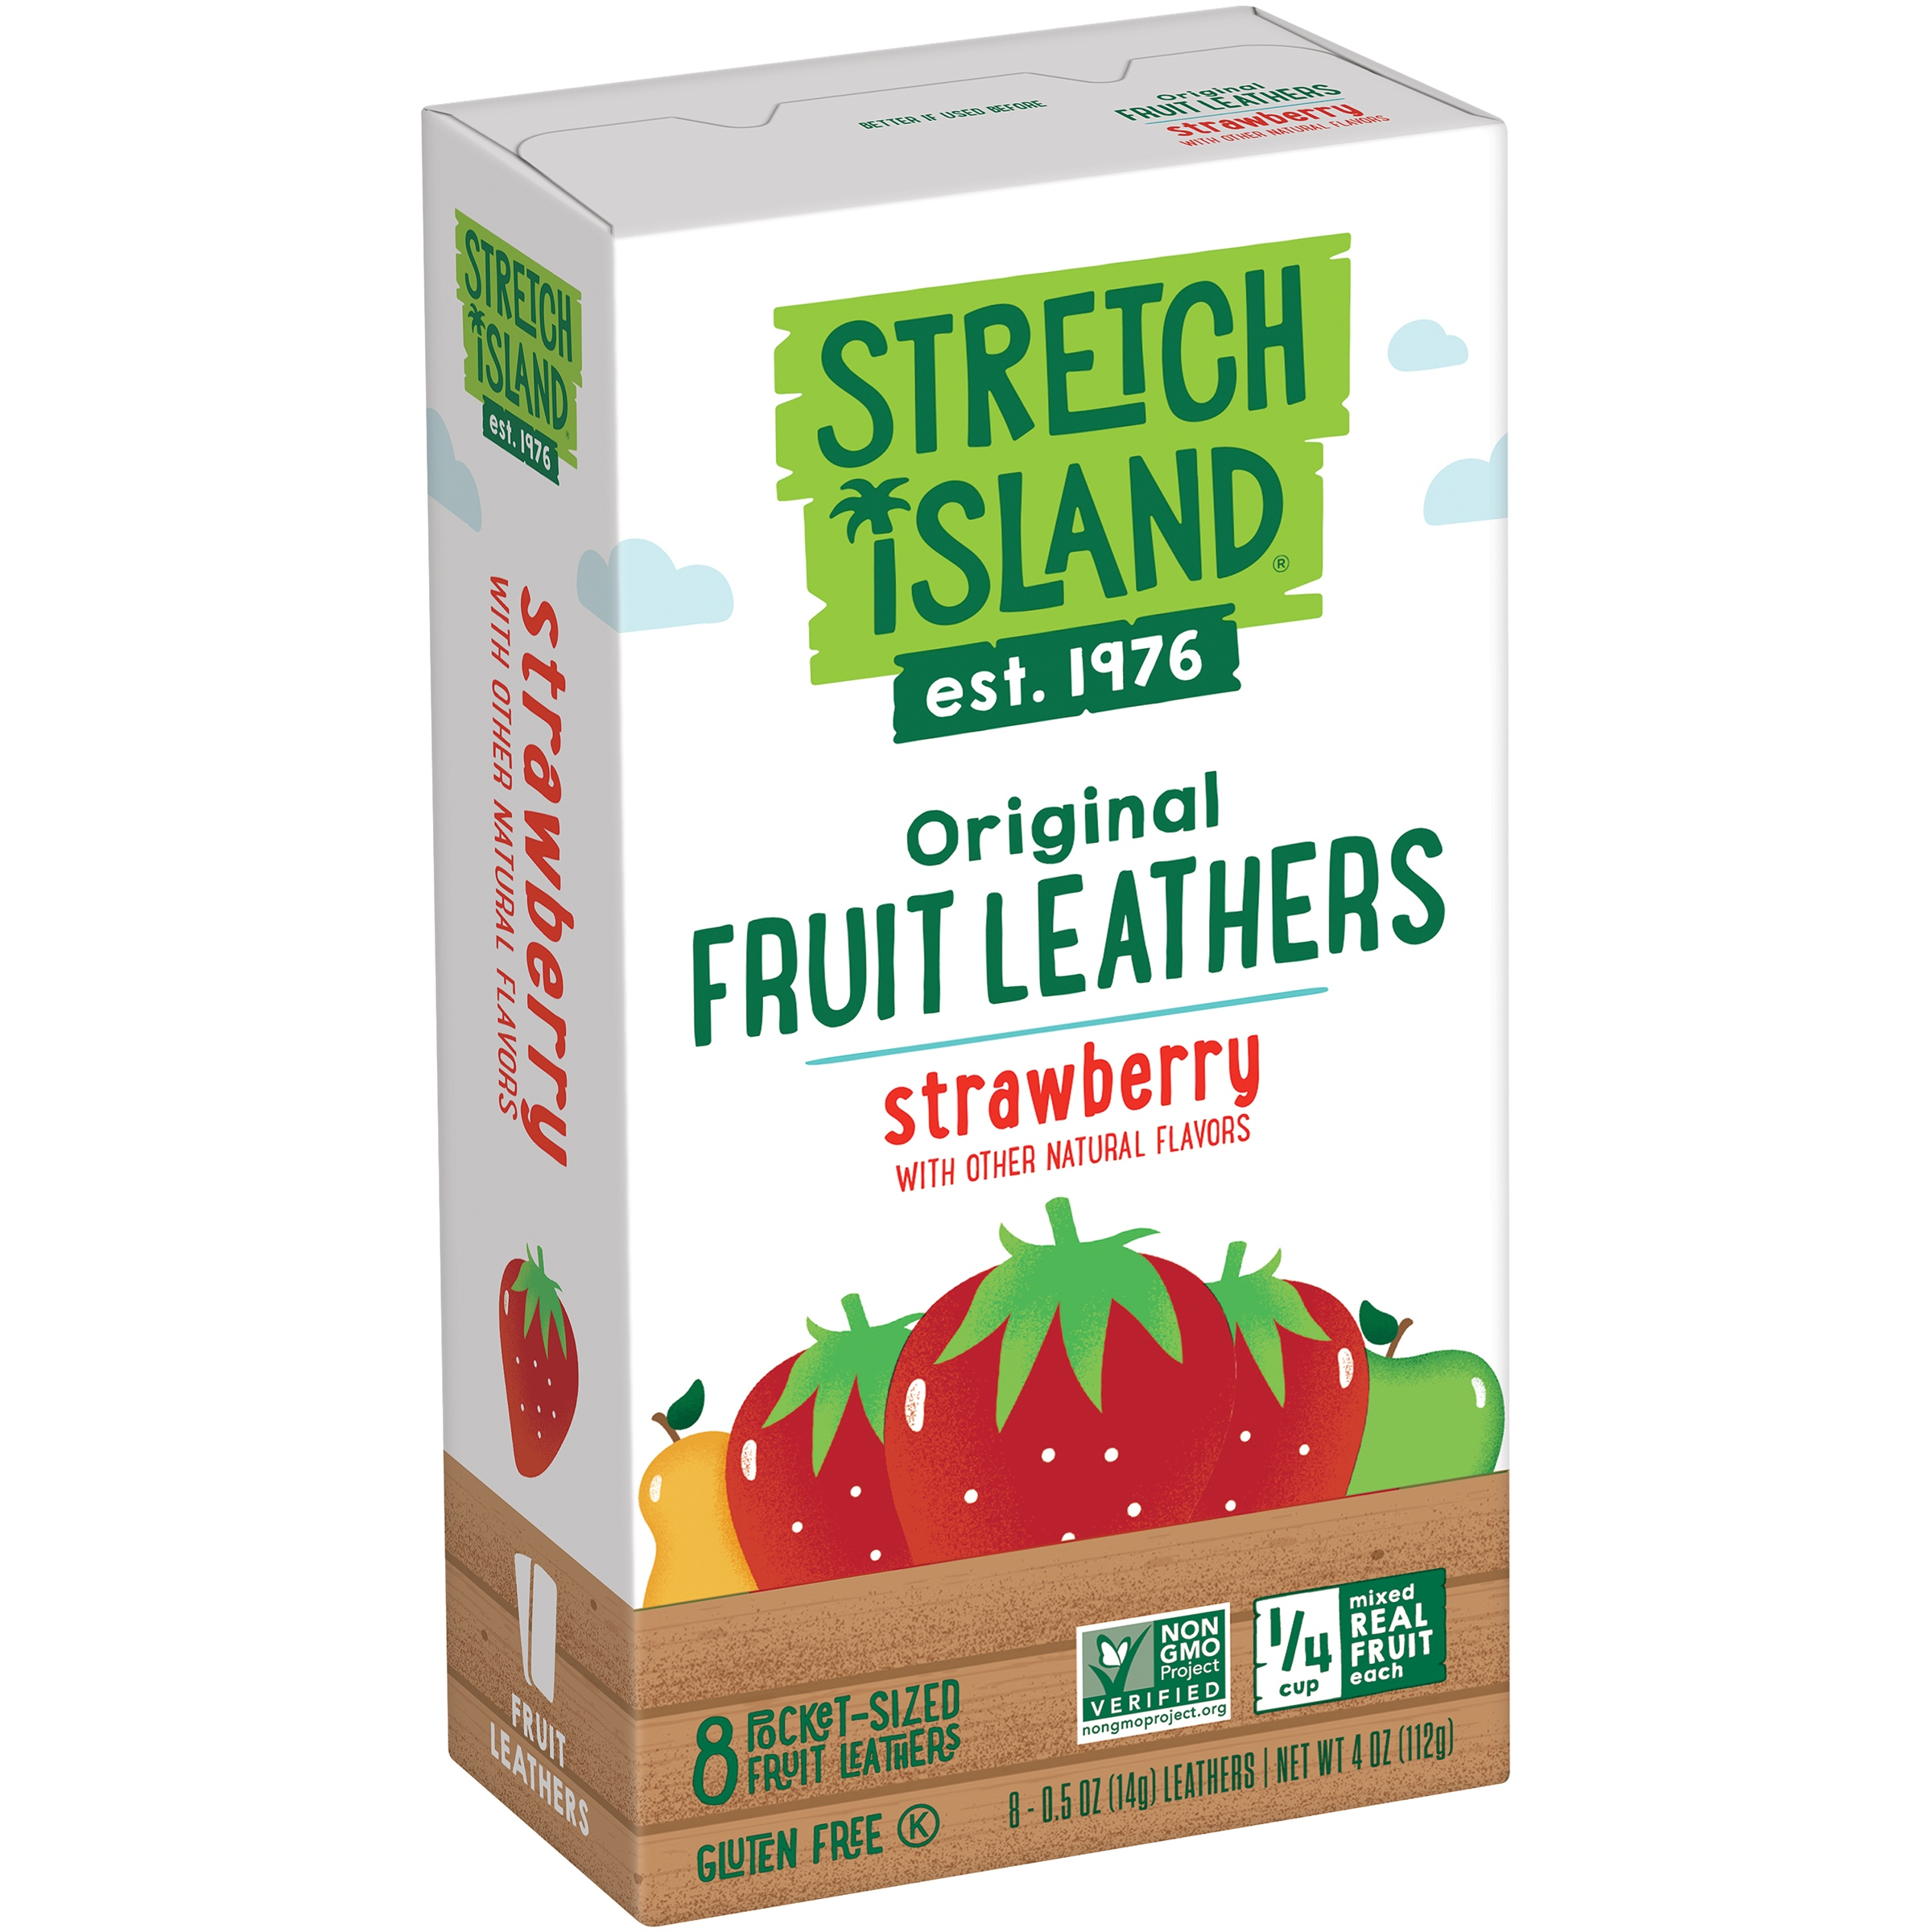 Permalink to Stretch Island Fruit Leather